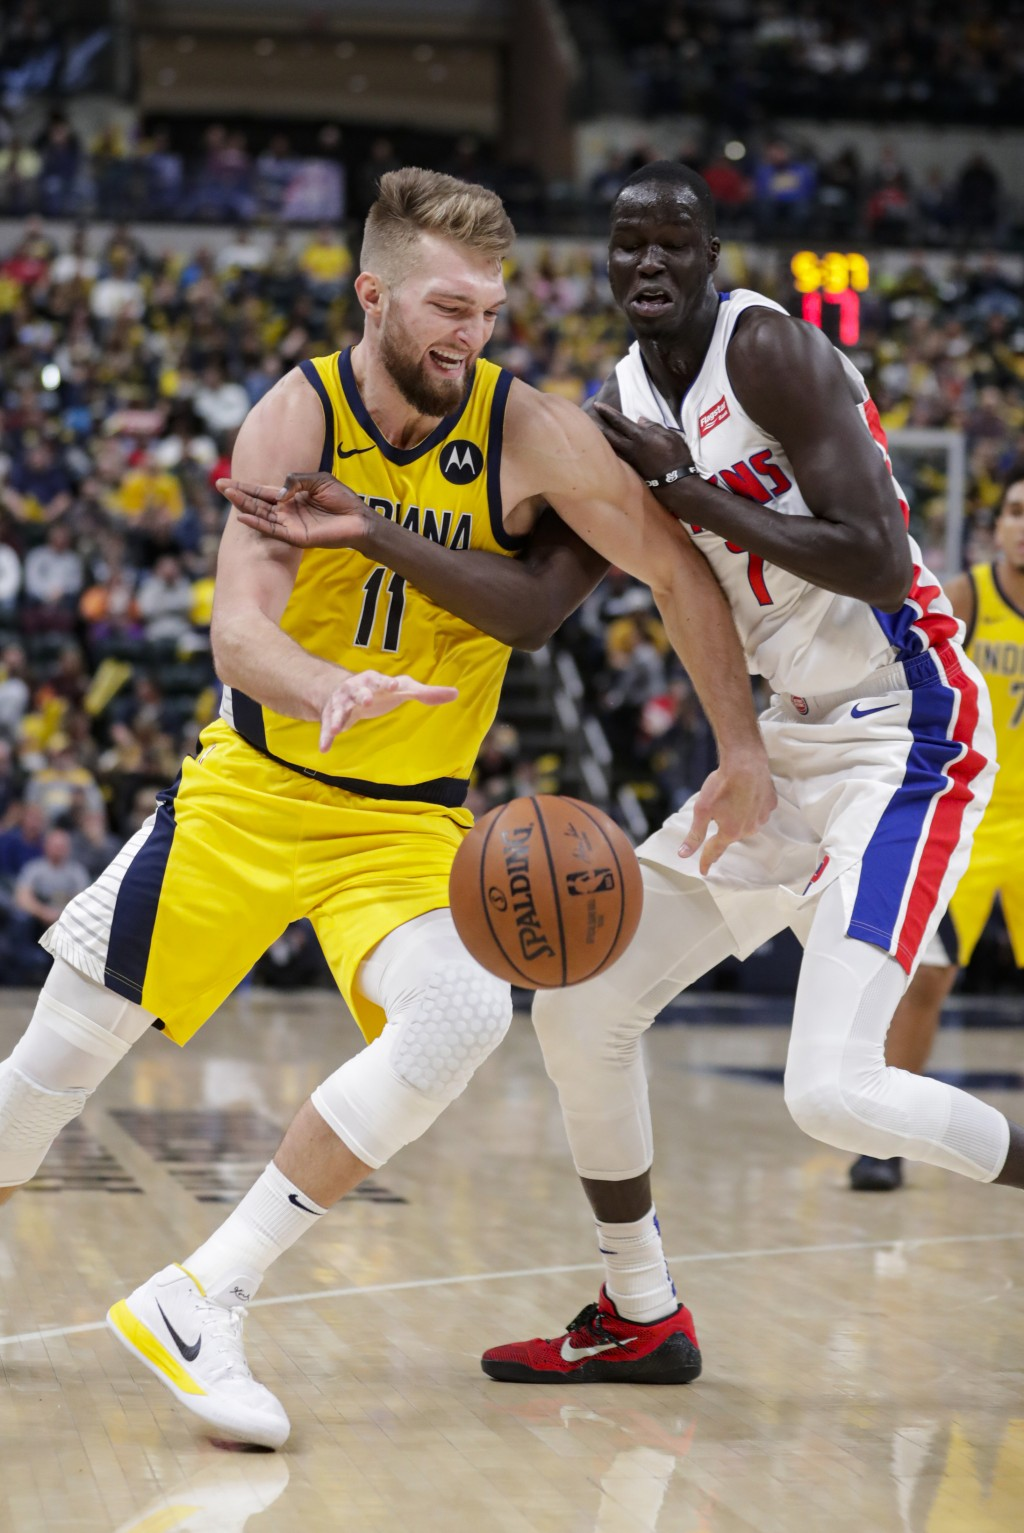 Indiana Pacers forward Domantas Sabonis (11) gets tangled up with Detroit Pistons forward Thon Maker (7) during the second half of an NBA basketball g...